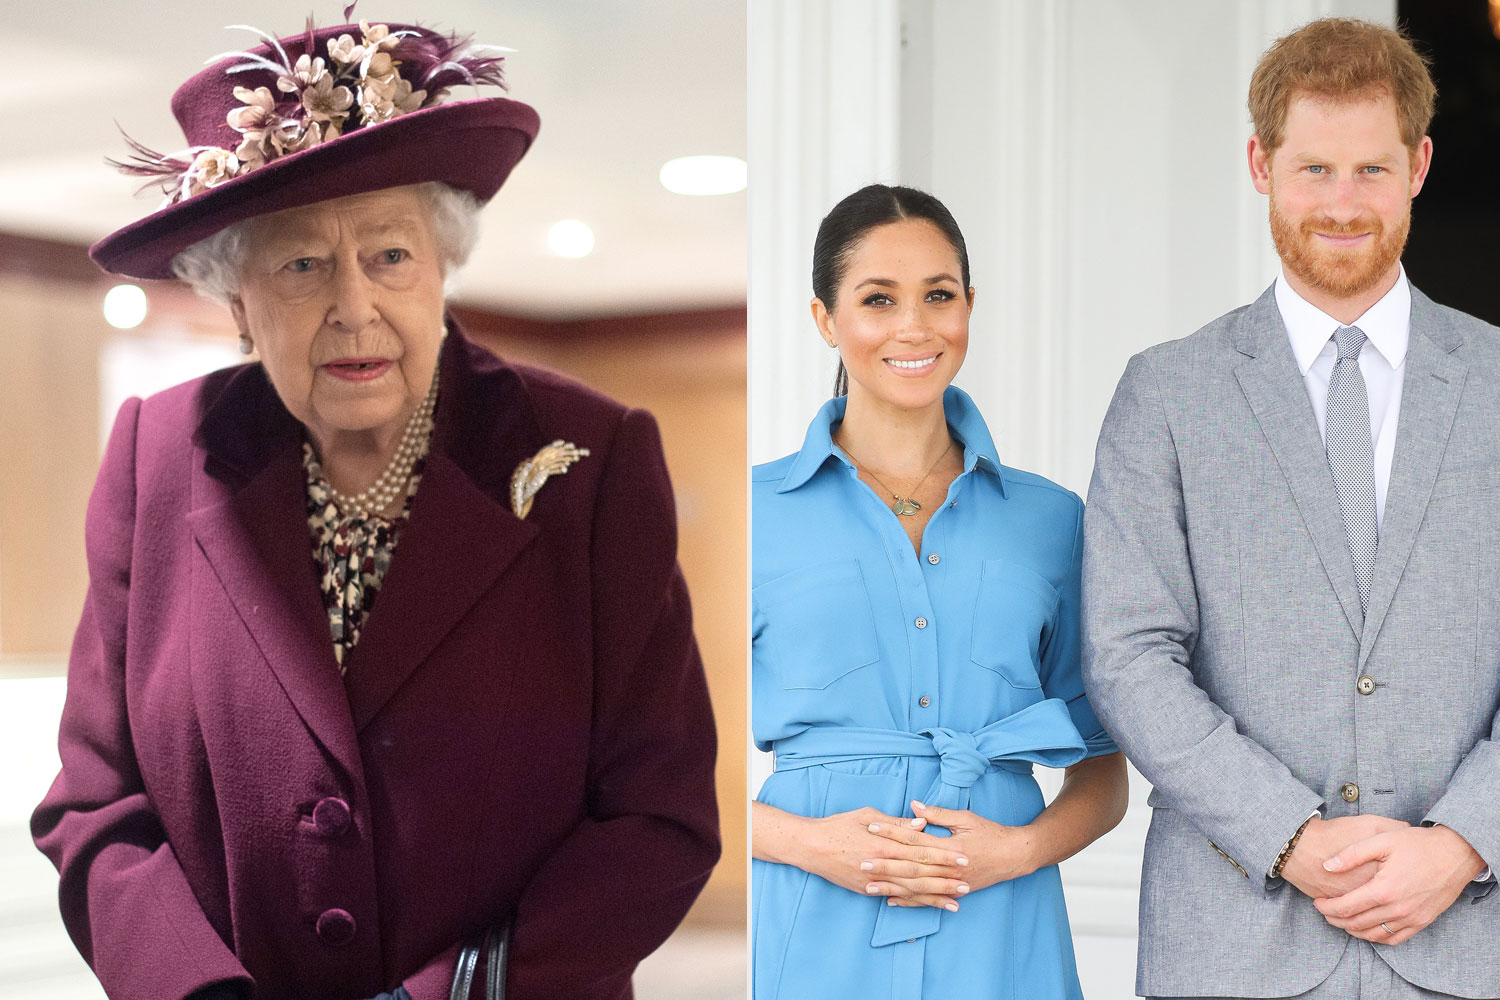 Queen Elizabeth Makes Subtle Nod to Meghan Markle and Prince Harry in New Speech Amid Royal Exit